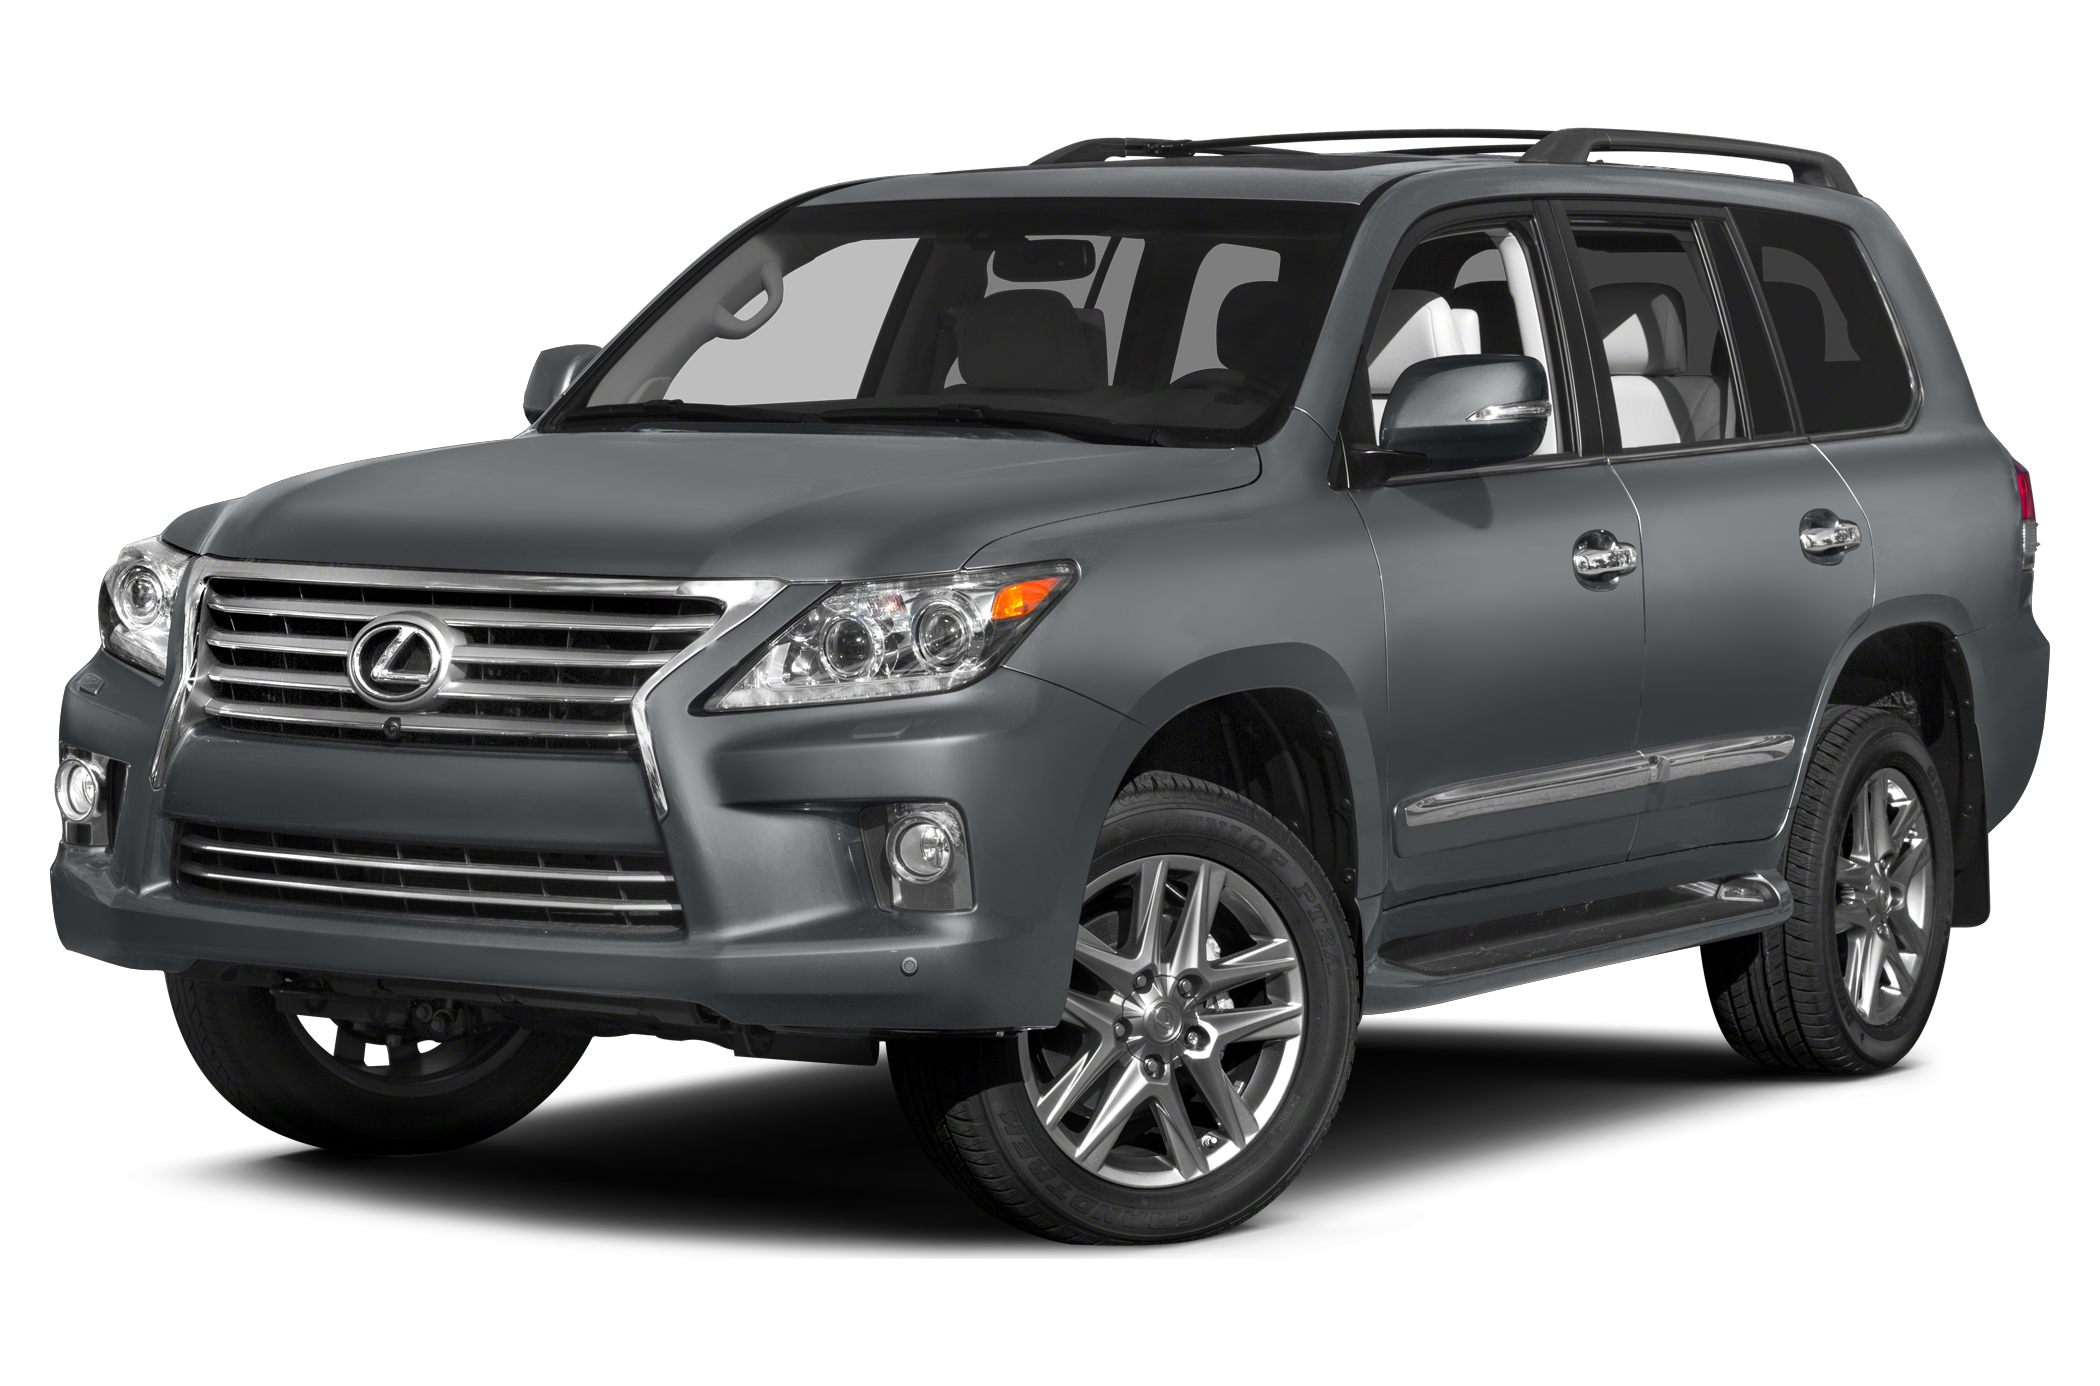 lexus lx 470 2014 review amazing pictures and images look at the car. Black Bedroom Furniture Sets. Home Design Ideas